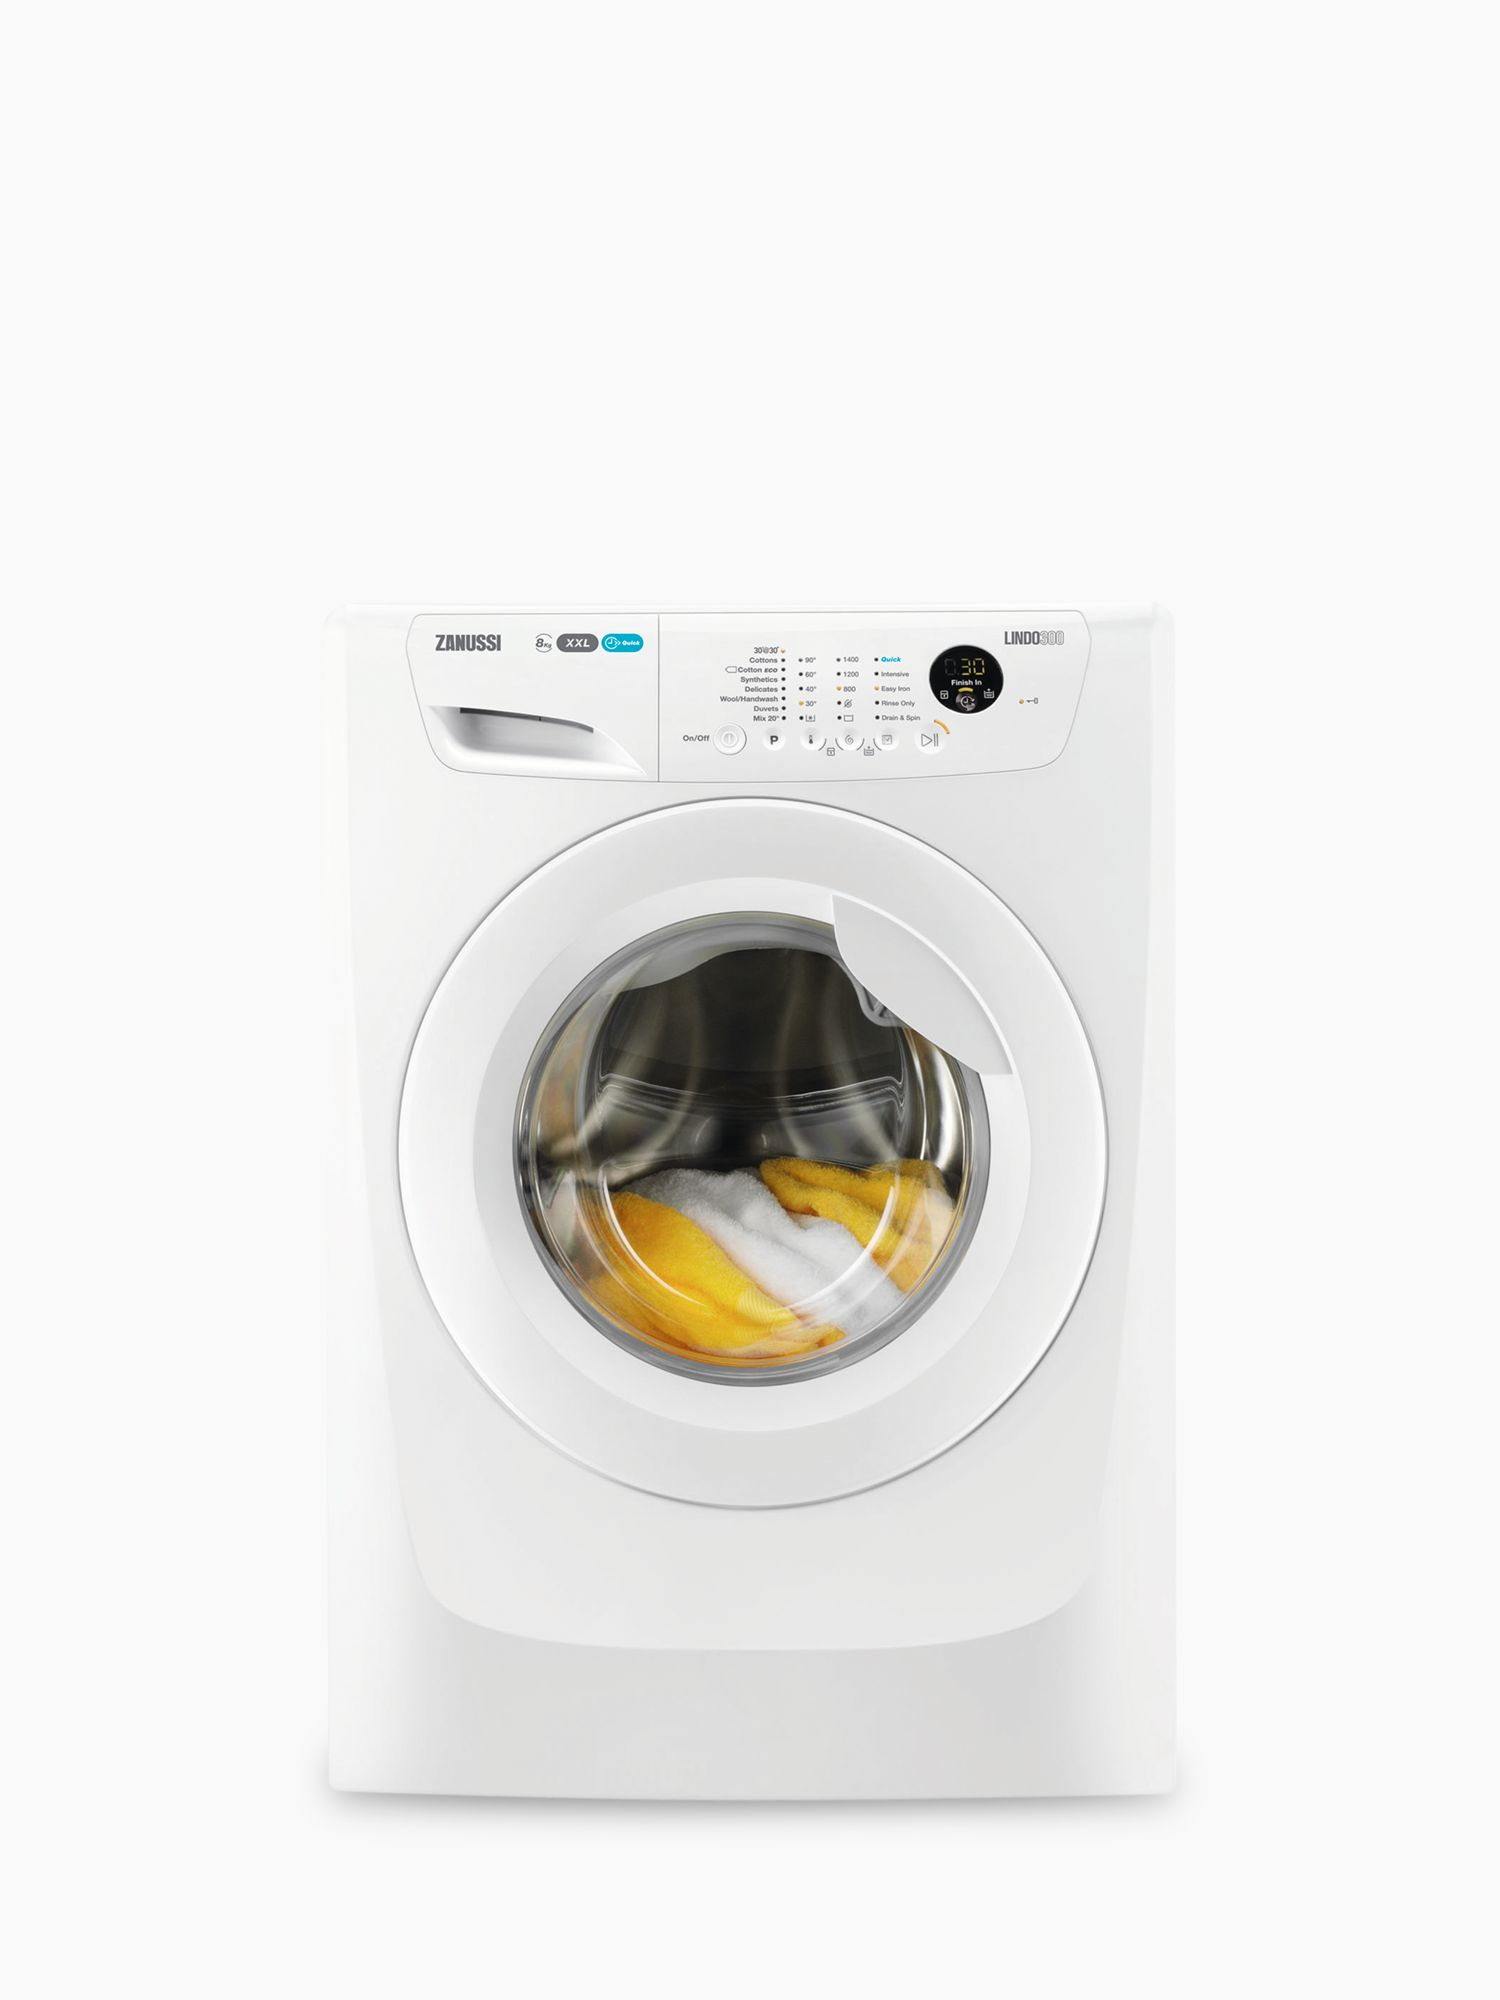 Zanussi Zanussi ZWF81463W Freestanding Washing Machine, 8kg Load, A+++ Energy Rating, 1400rpm Spin, White